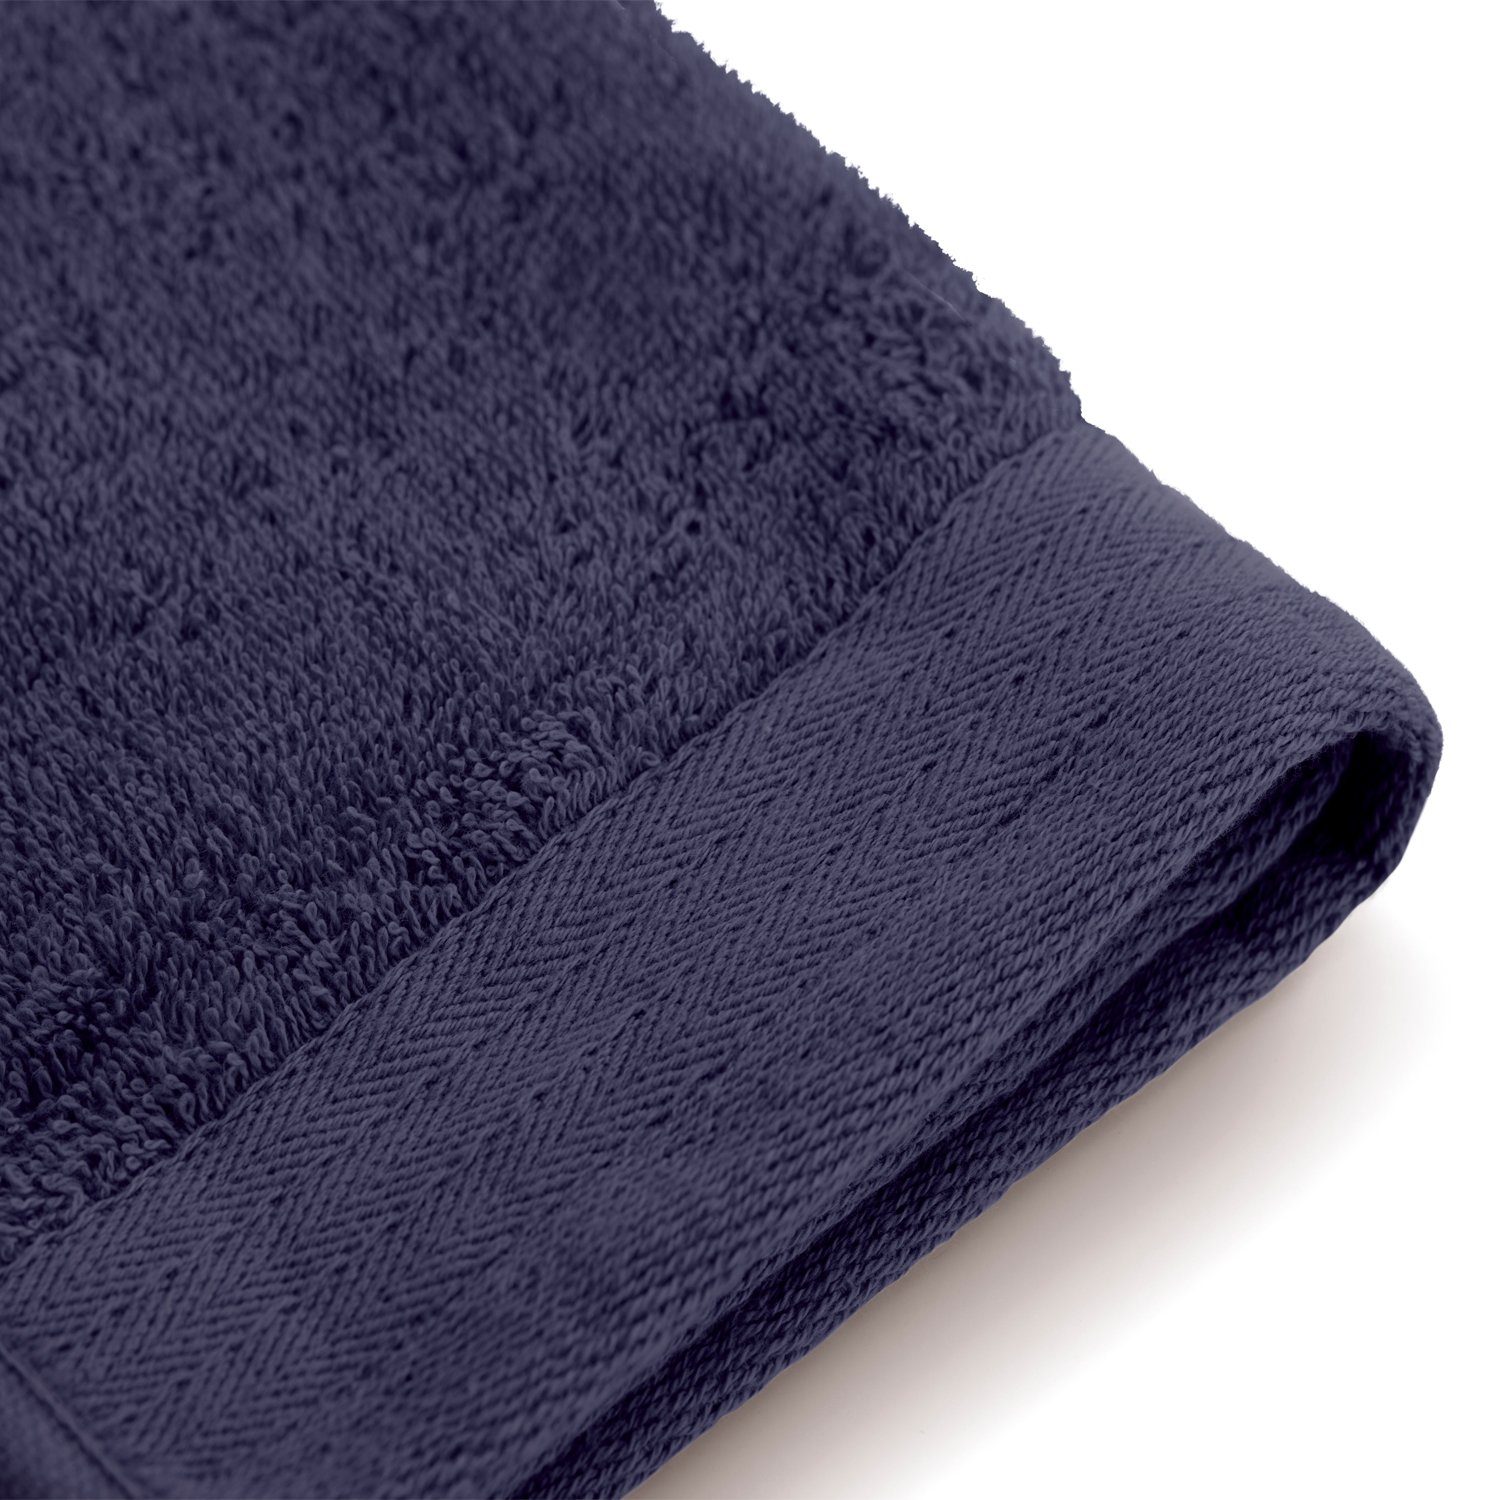 Serviette de bain Soft Cotton Terry 50x100 cm bleu marine